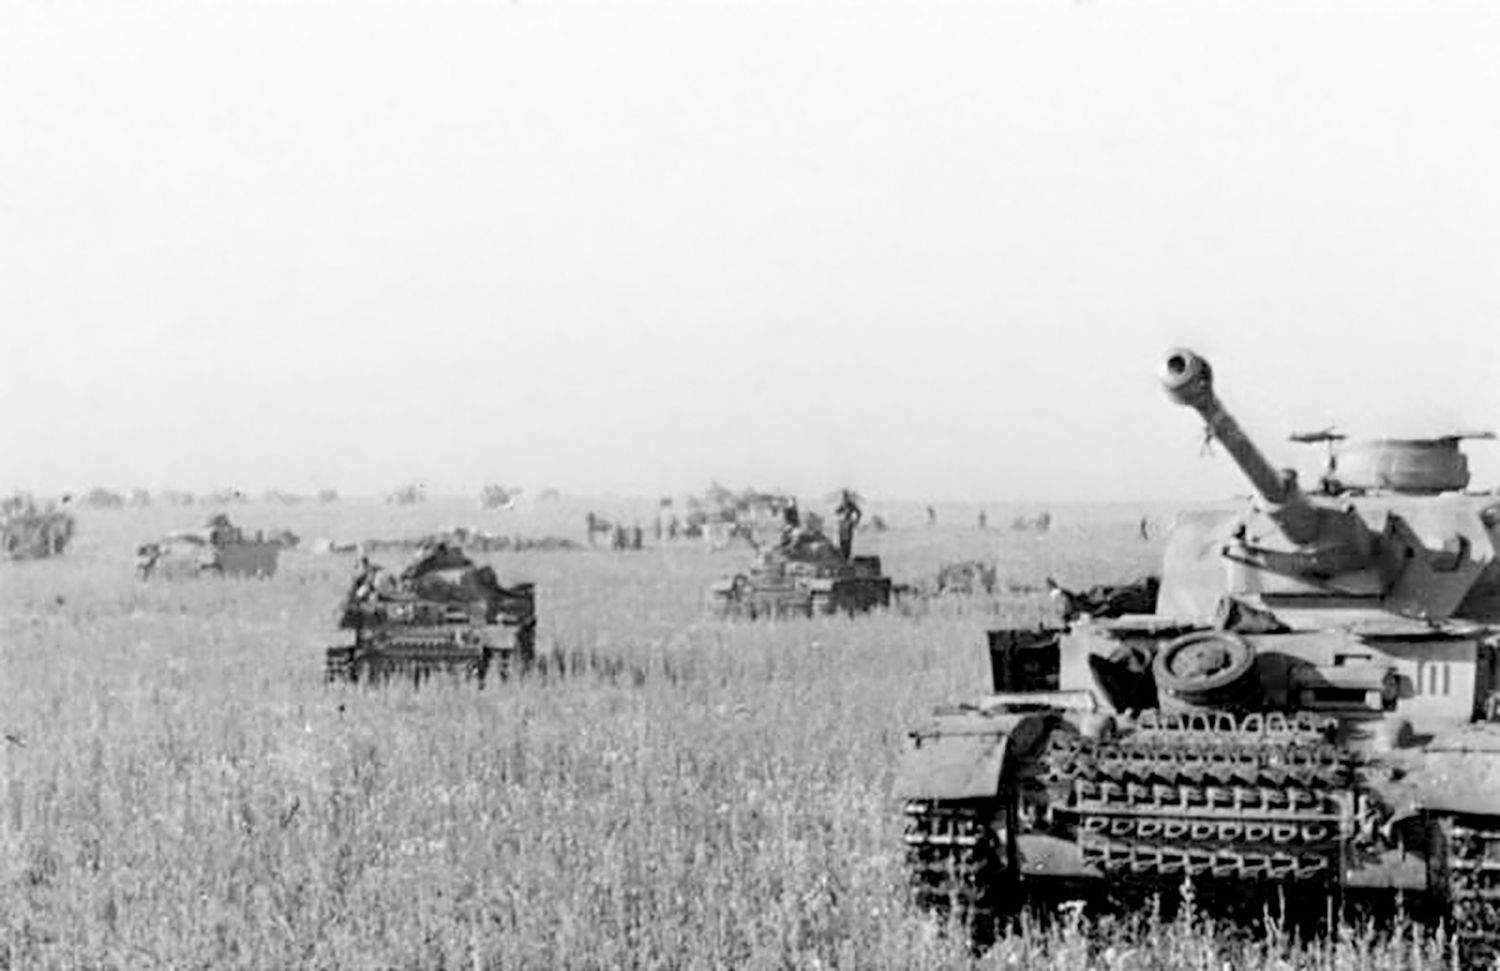 German Panzer tanks, 1943. Photographer, Henisch. German Federal Archives.